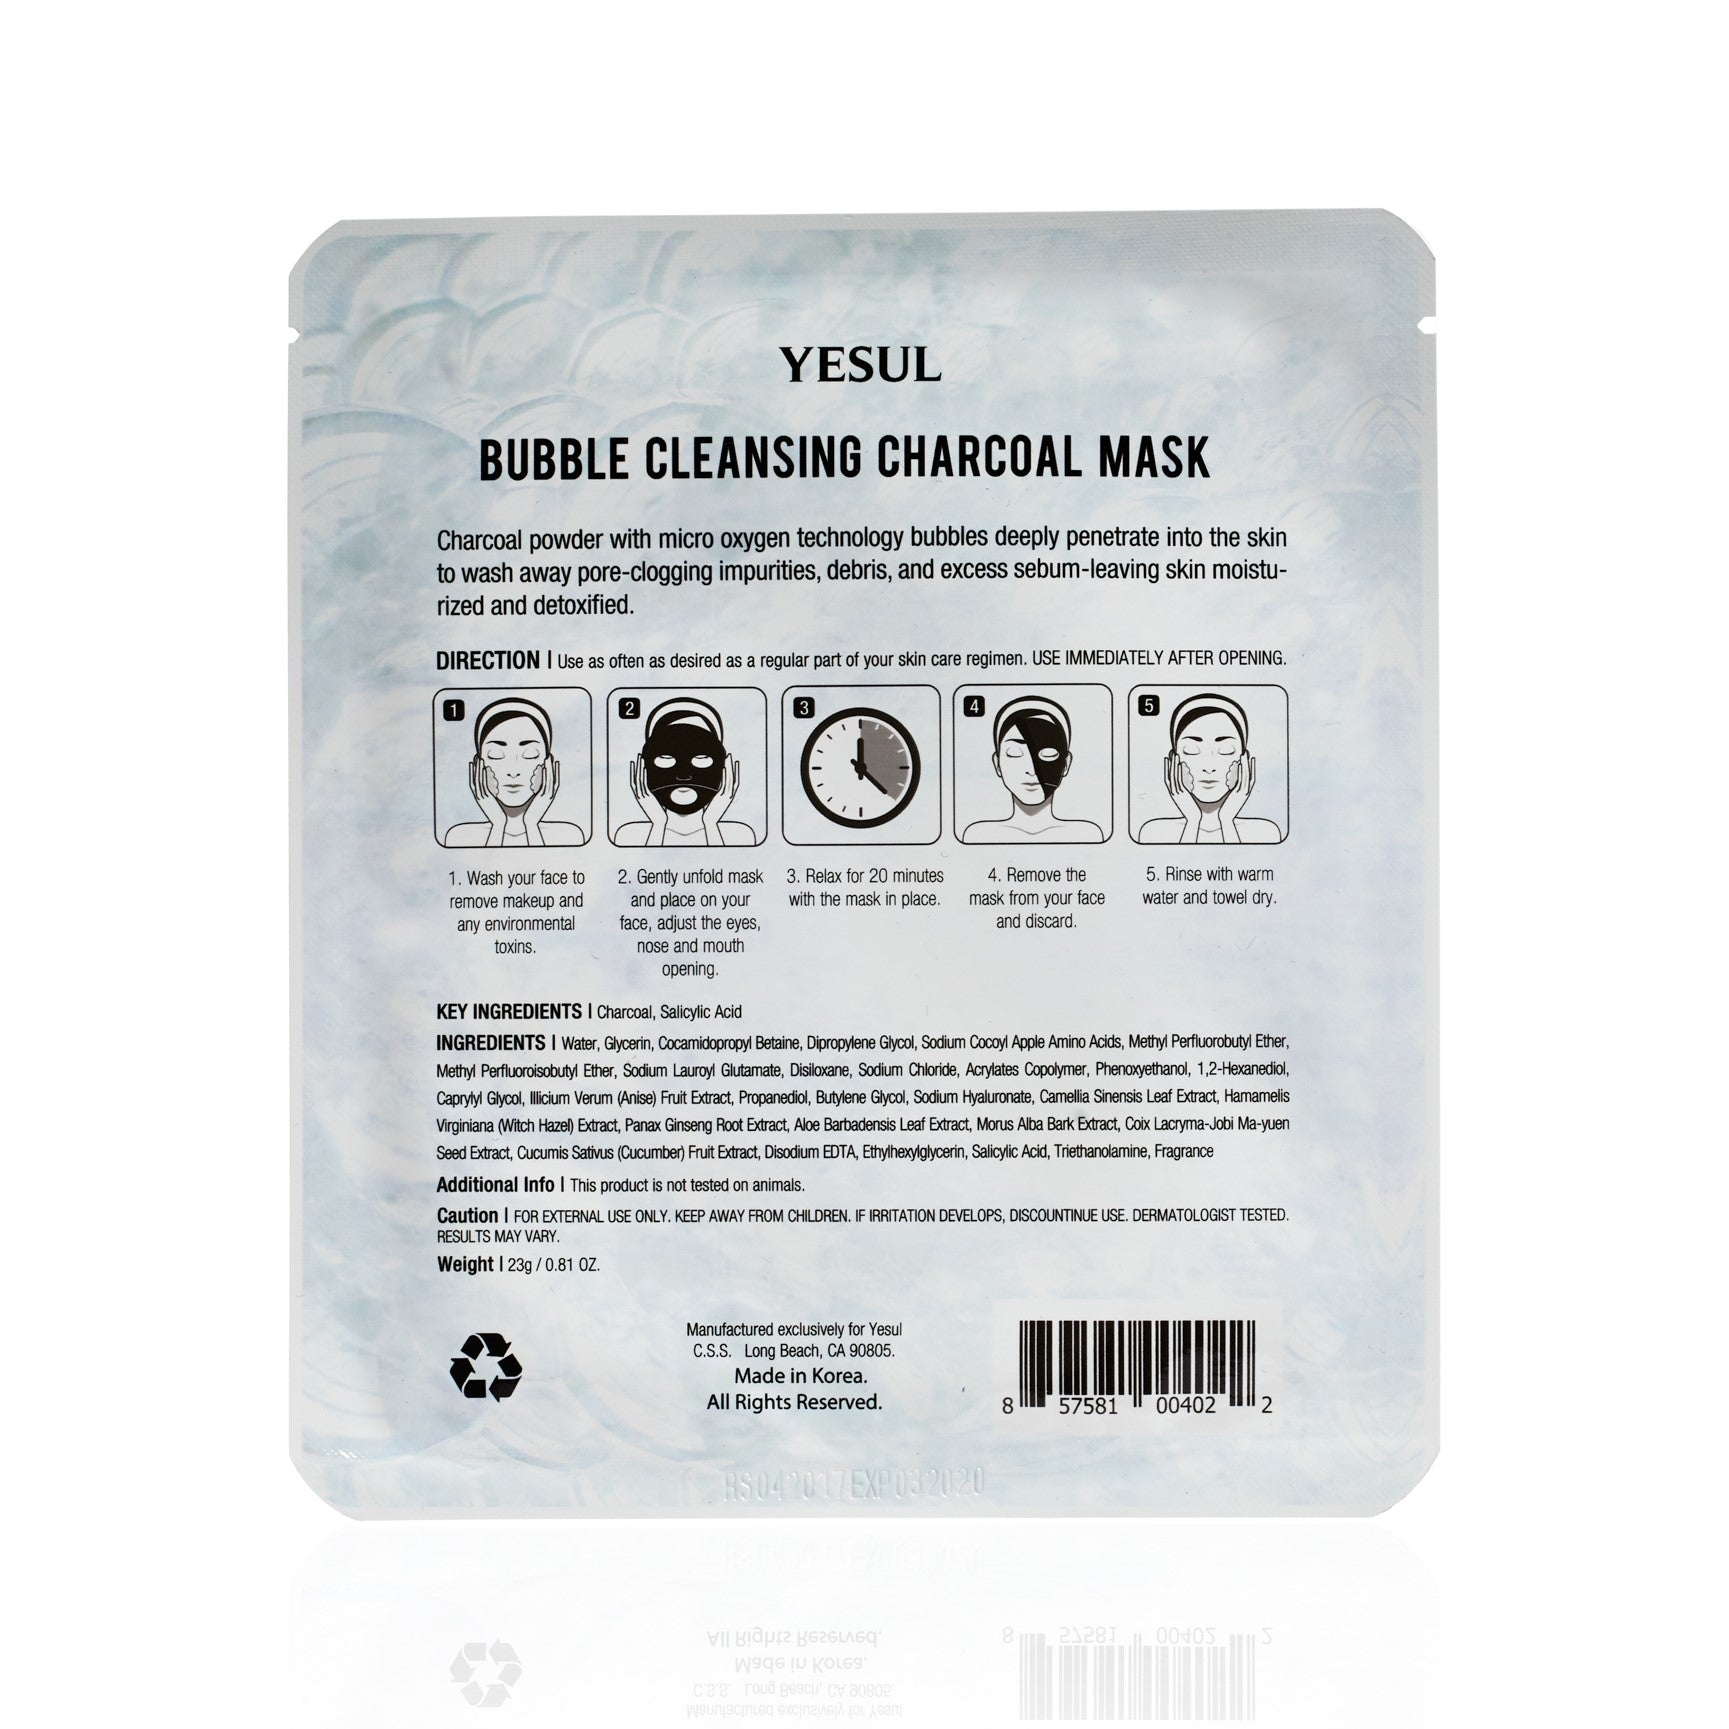 YESUL Bubble Cleansing Charcoal Bubble Sheet Mask backview of packaging